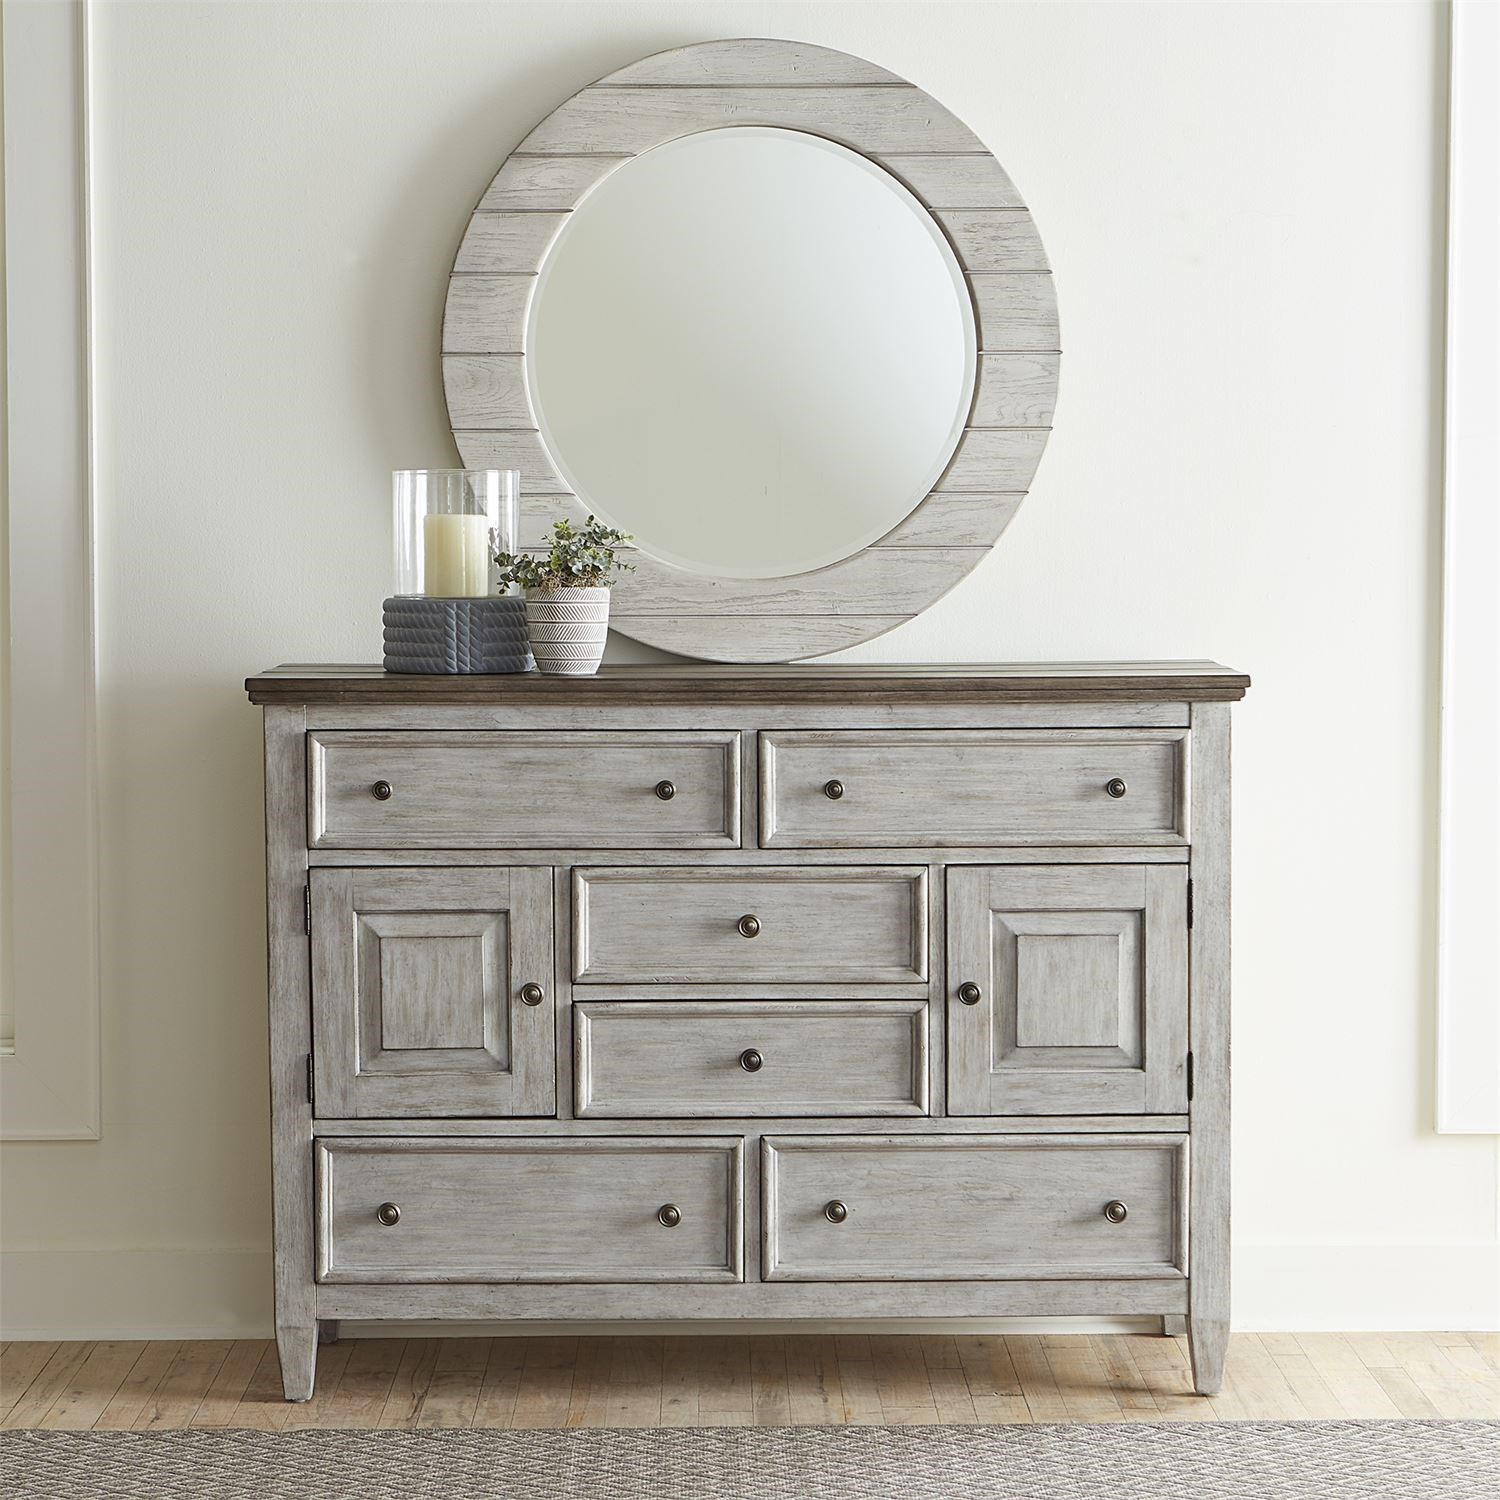 Heartland Dresser and Mirror by Liberty Furniture at Northeast Factory Direct